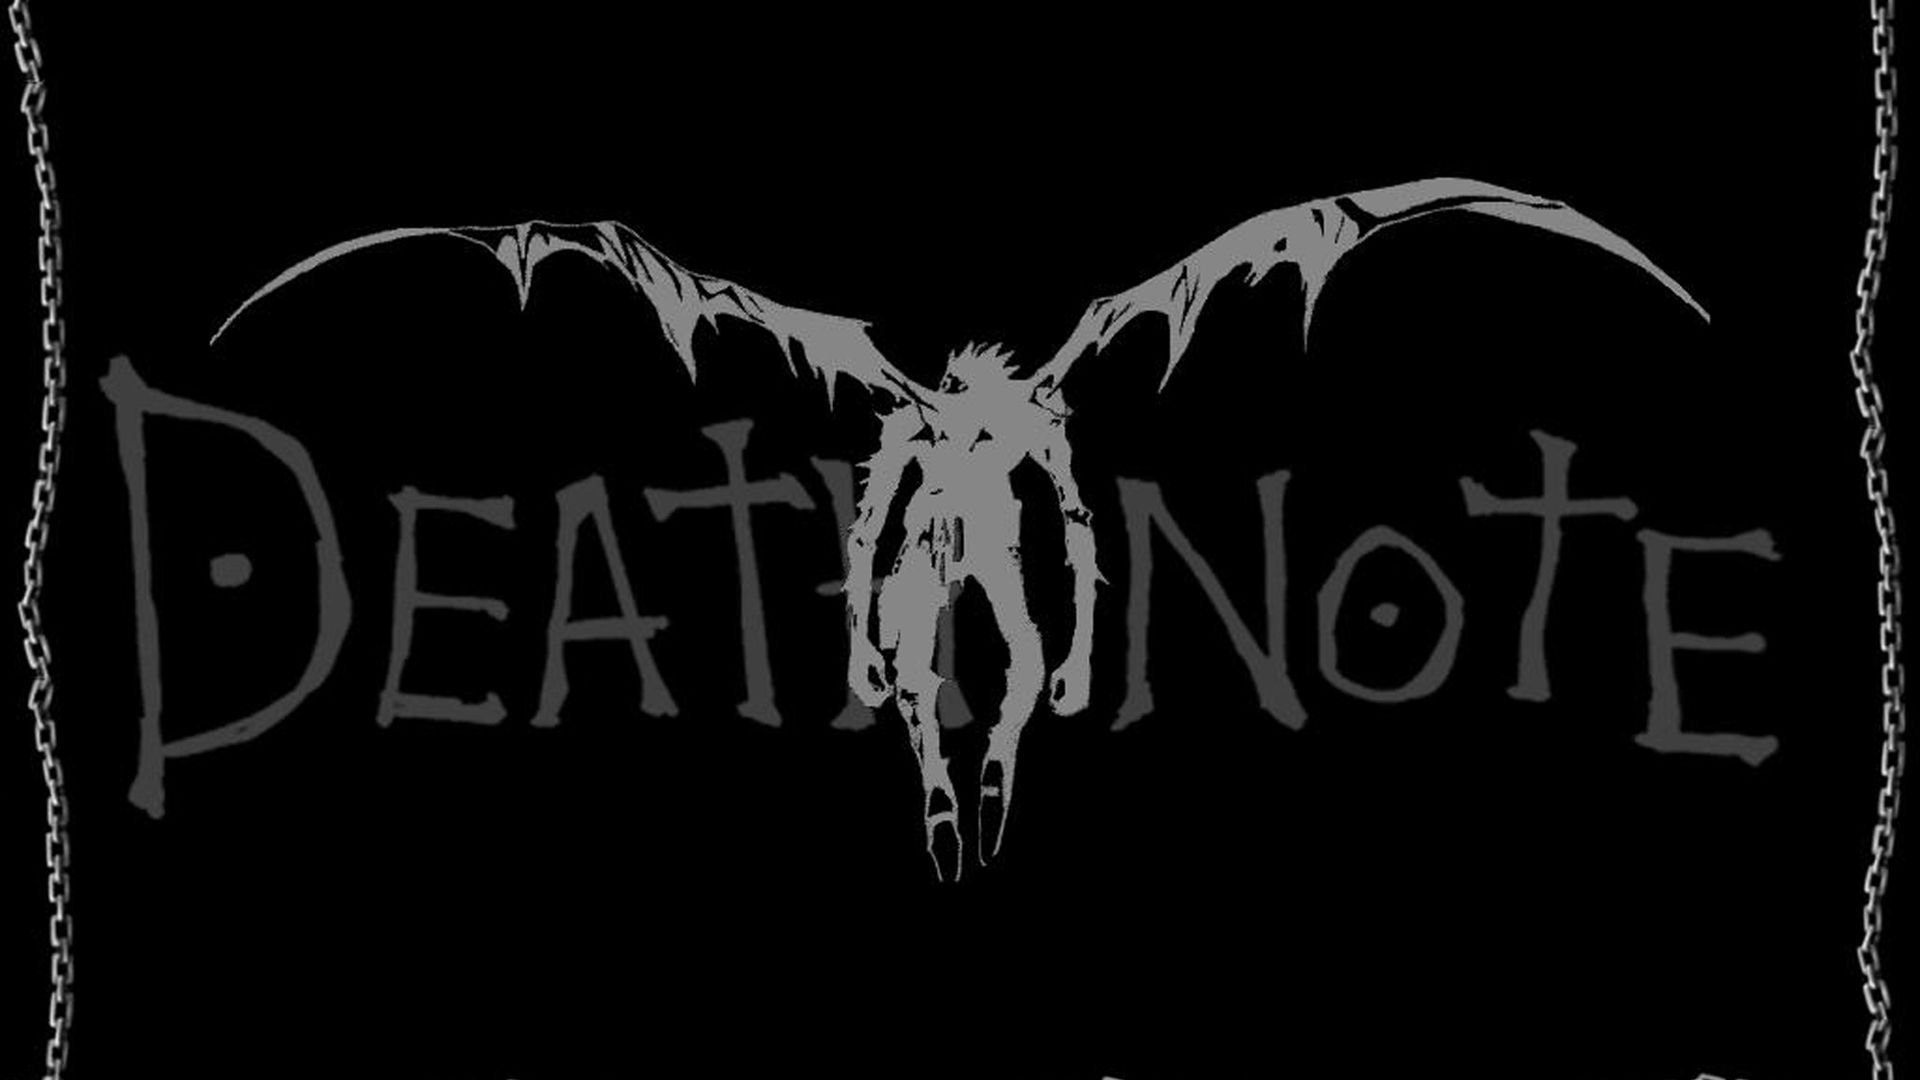 death note wallpaper,black,font,text,darkness,graphic design